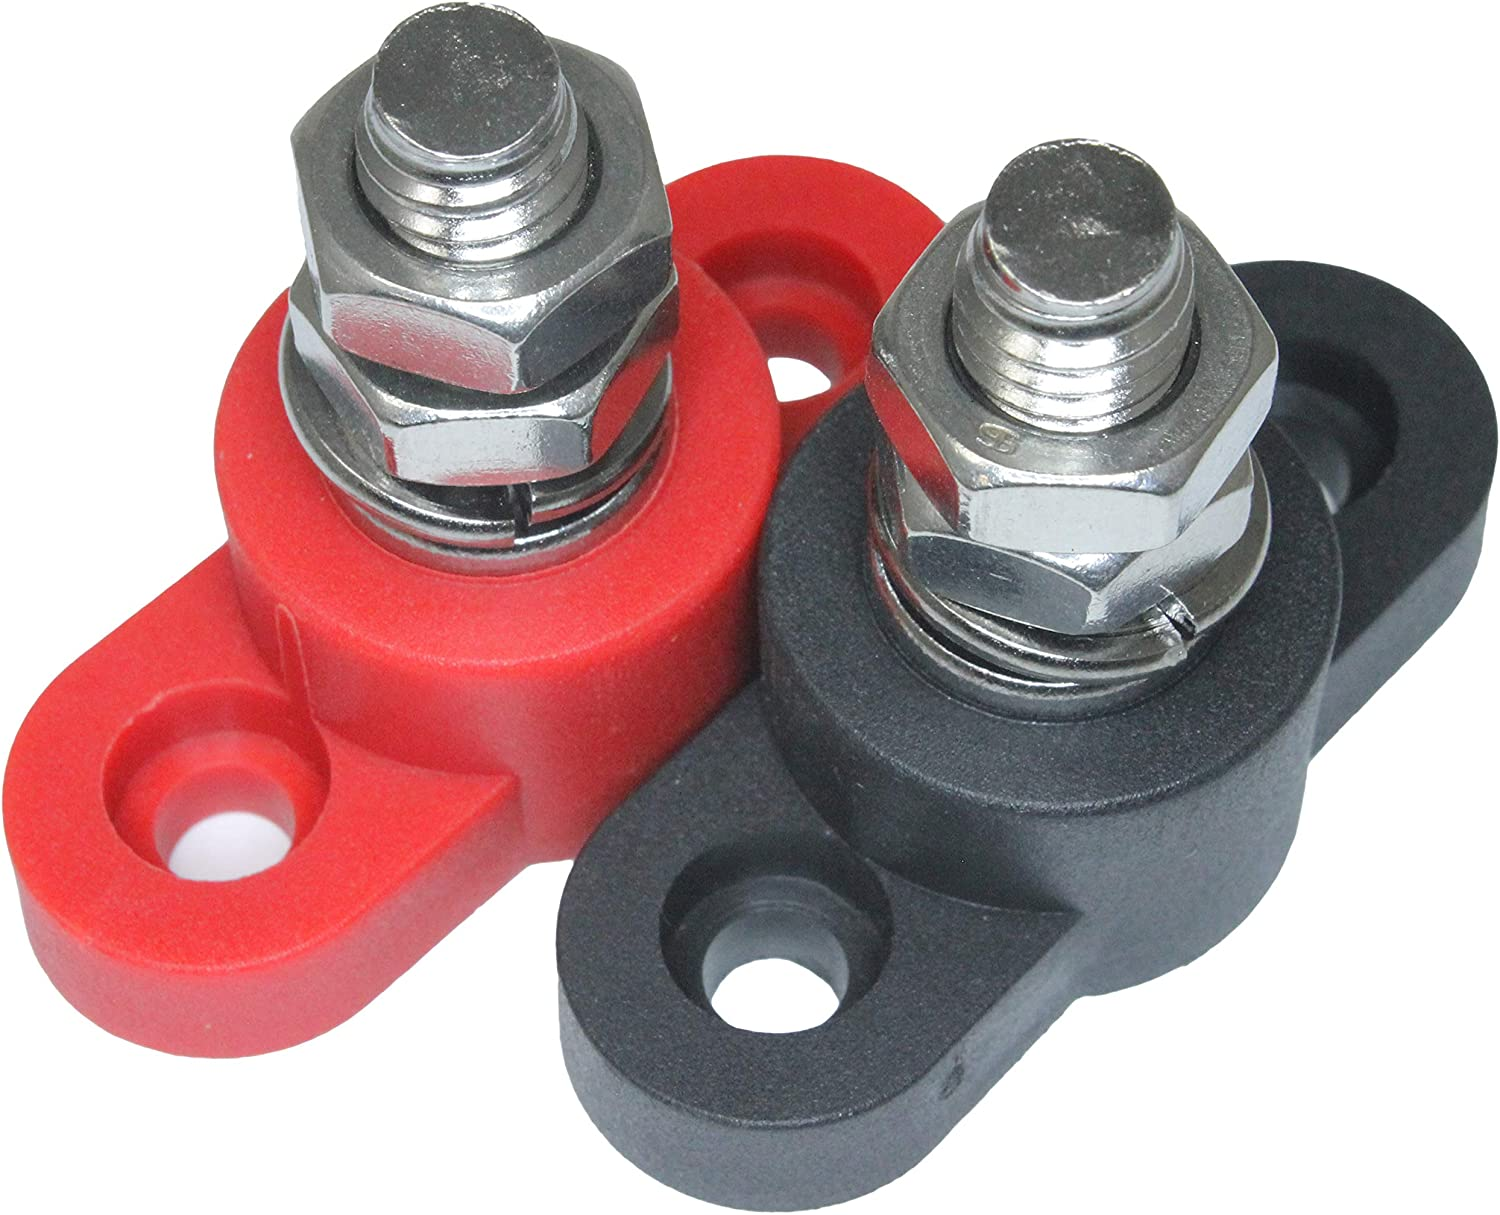 Positive Insulated Battery Power Junction Post Block 3/8 Lug X 16 thread (Red & Black Set): Automotive